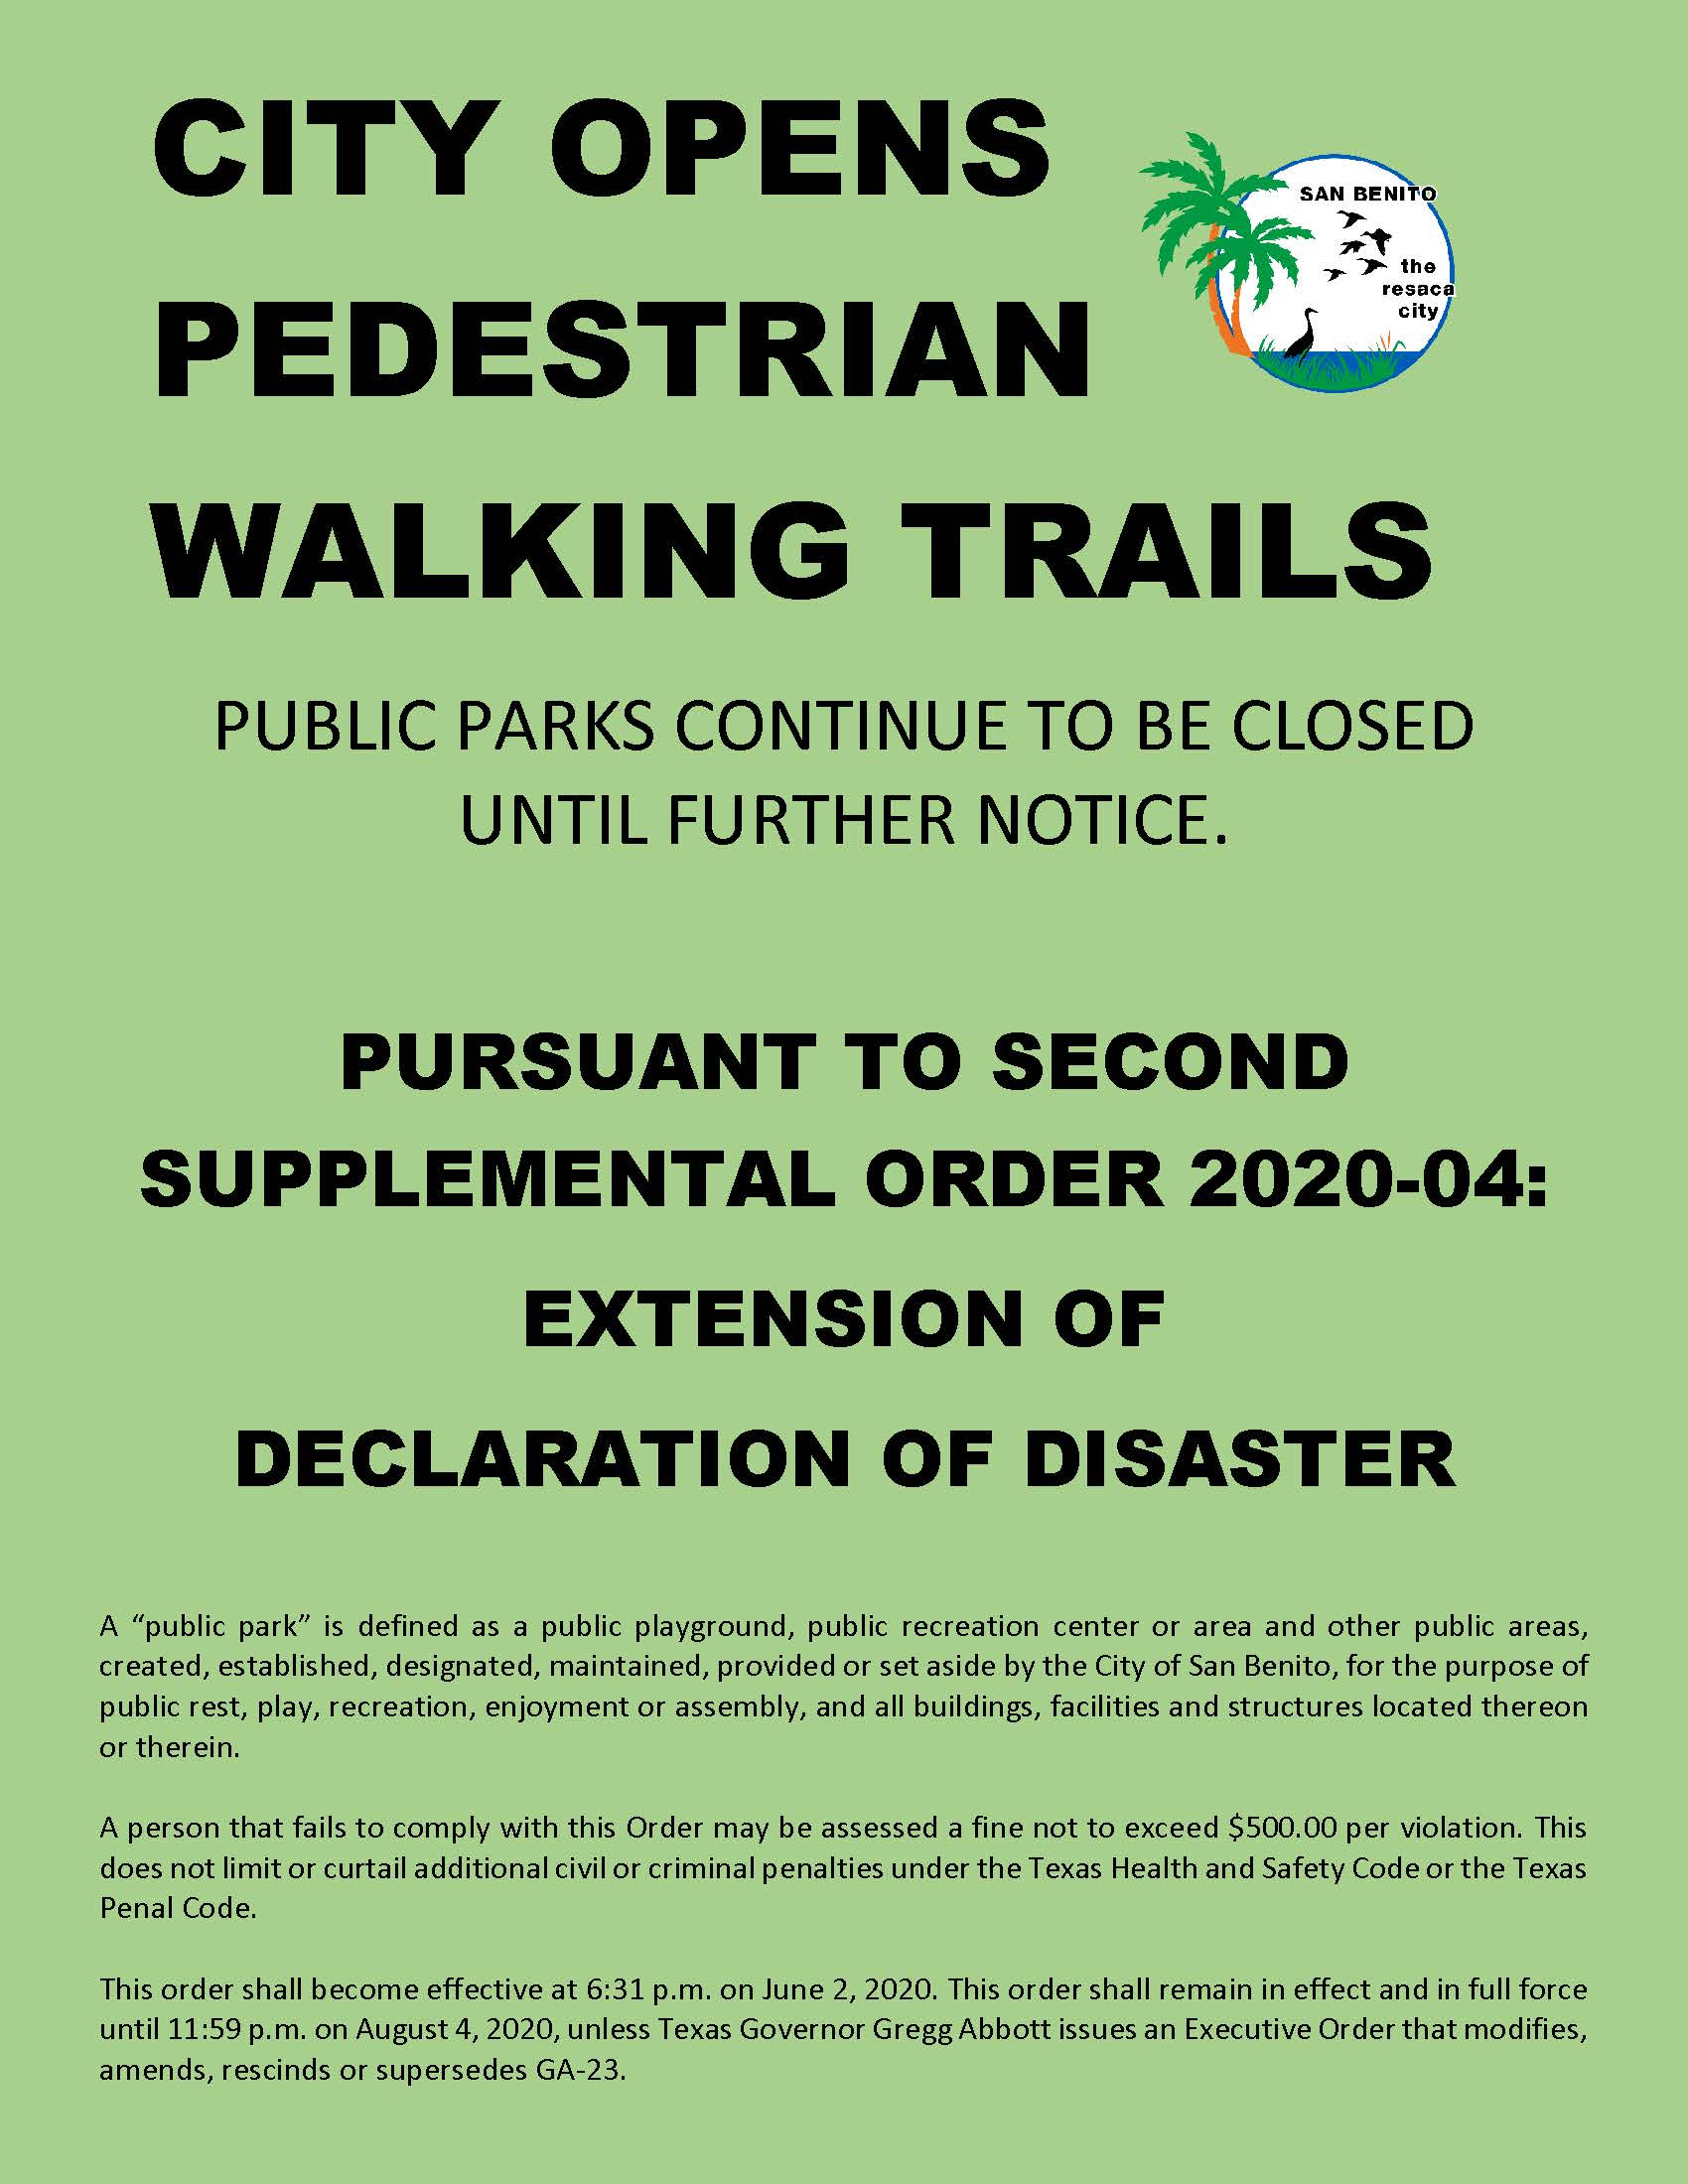 CITY OPENS PEDESTRIAN WALKING TRAILS